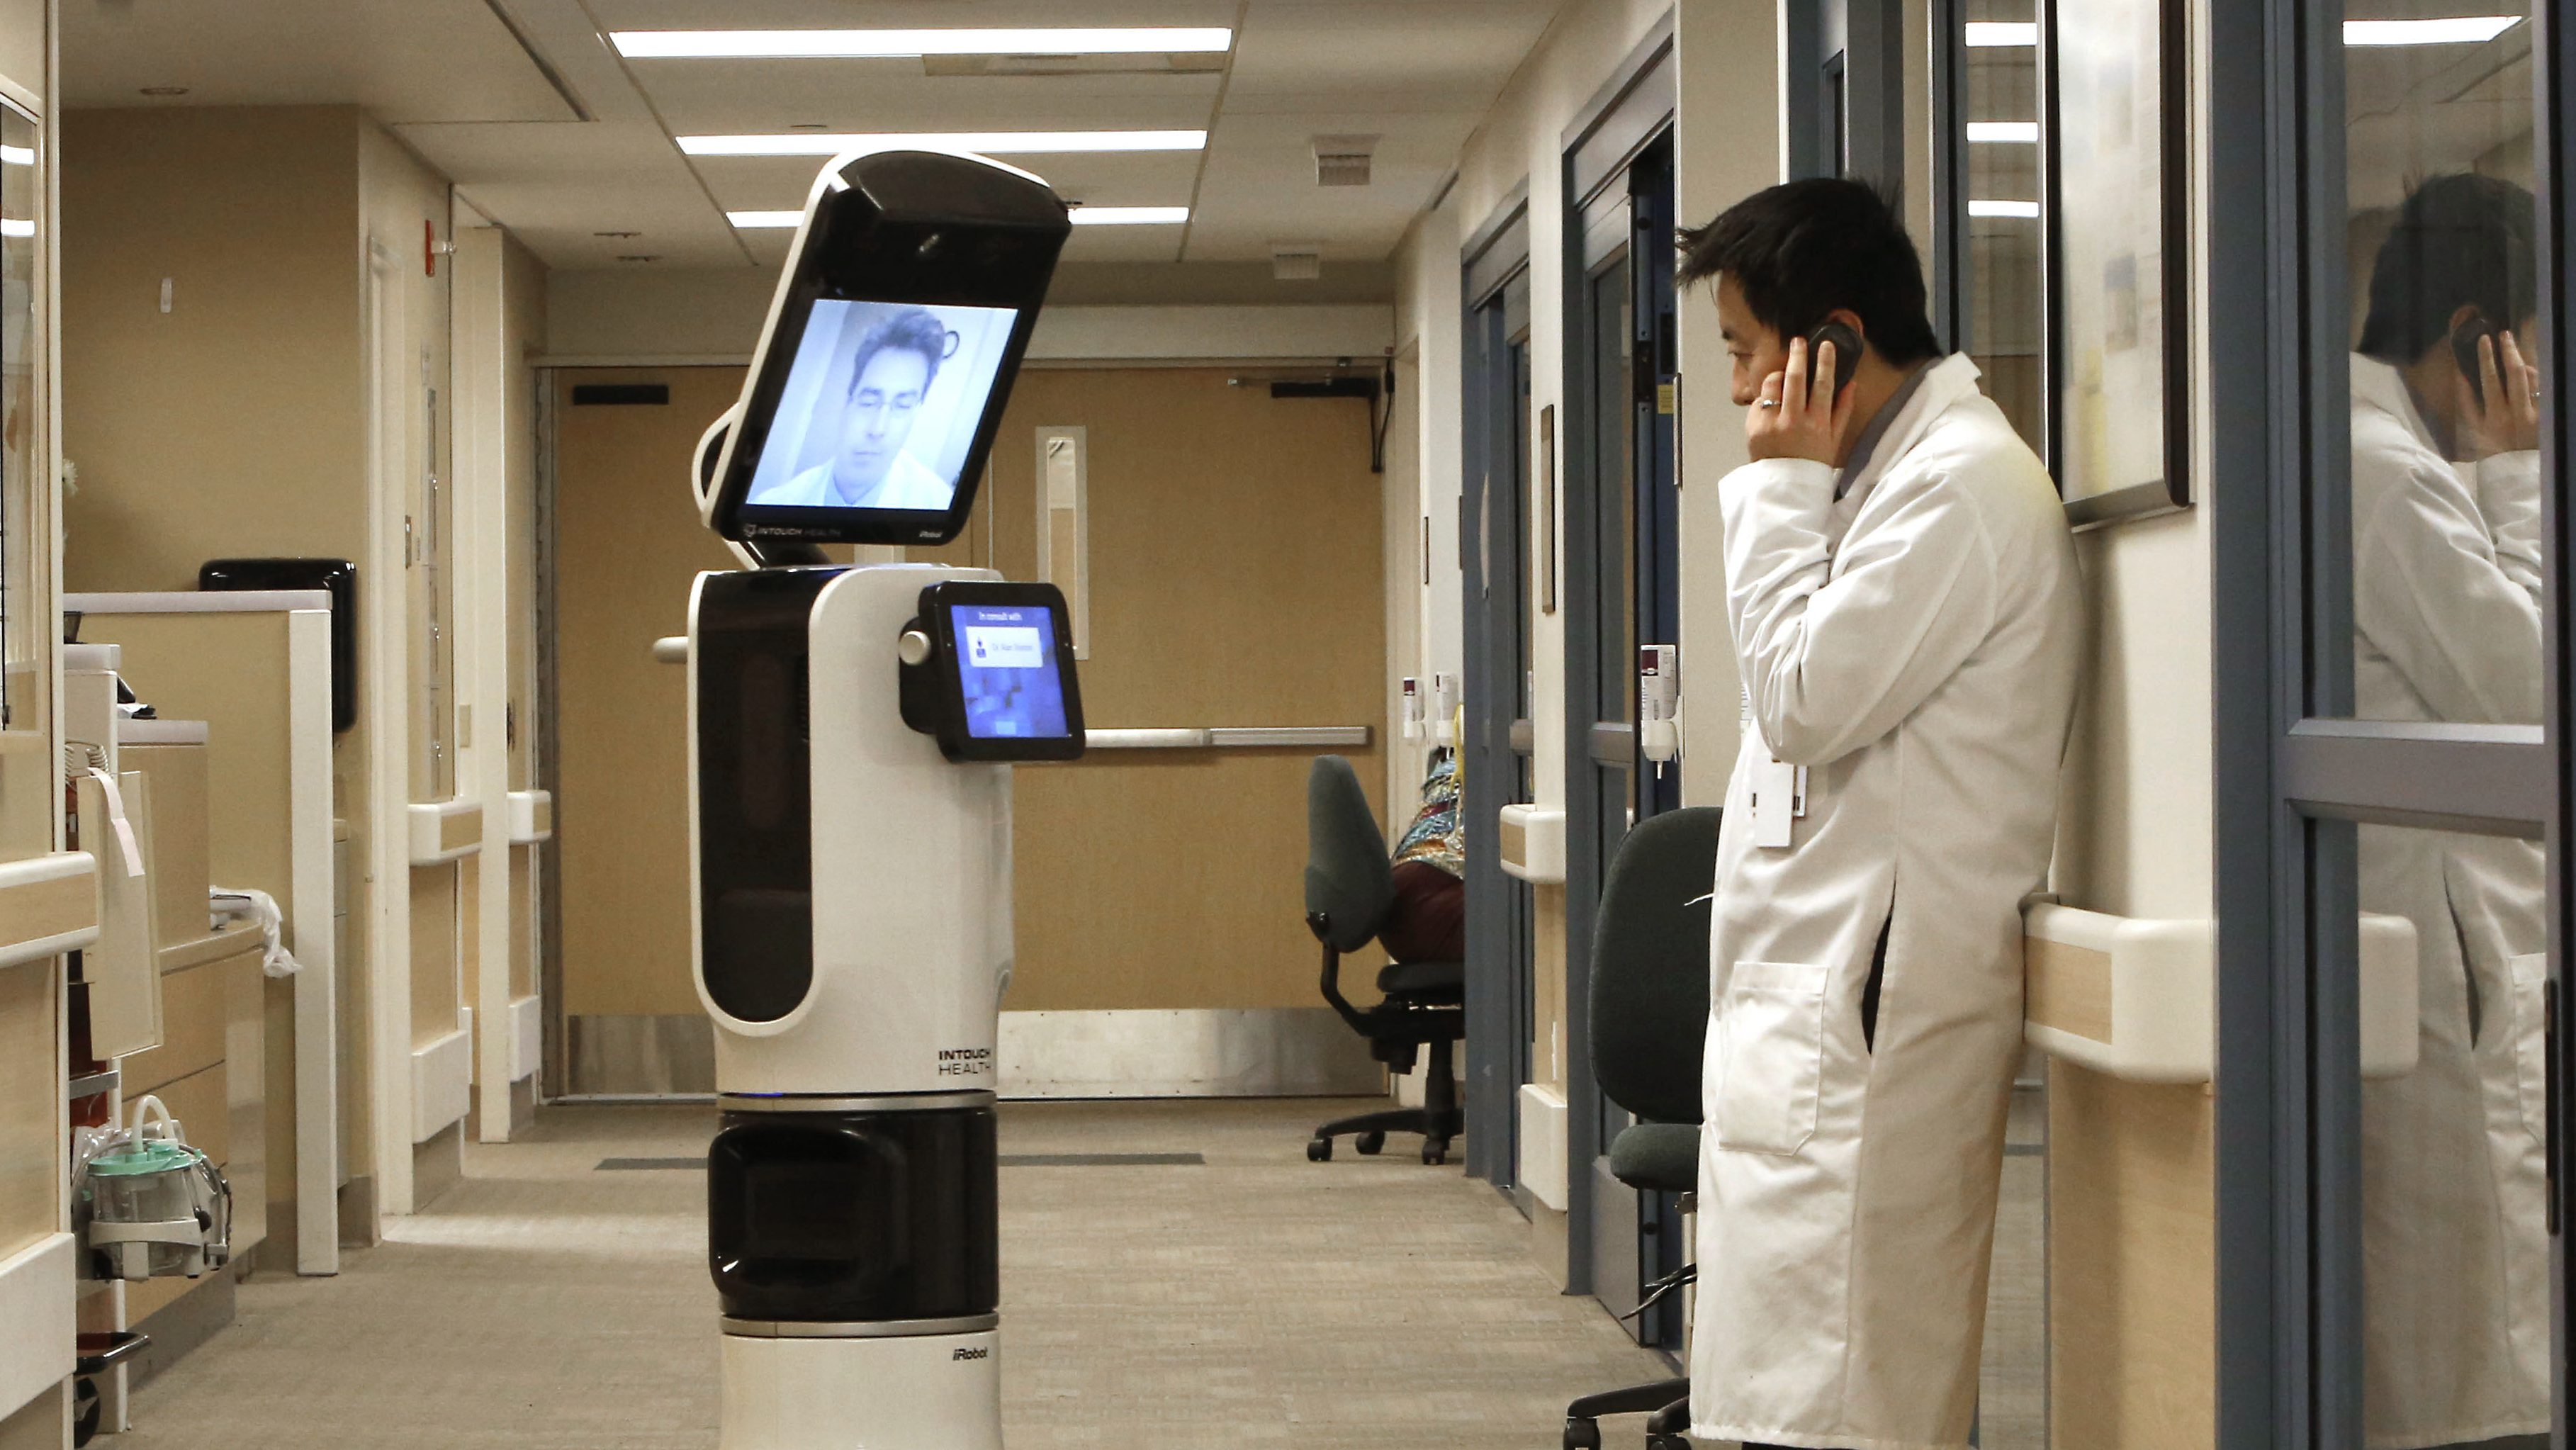 """In this photo taken Wednesday, Nov. 6, 2013 Dr. Alan Shatzel, medical director of the Mercy Telehealth Network, is displayed on the monitor RP-VITA robot as he waits to confer with Dr. Alex Nee at Mercy San Juan Hospital in Carmichael, Calif. The robots enable physicians to have  """"beam"""" themselves into hospitals to diagnose patients and offer medical advice during emergencies."""